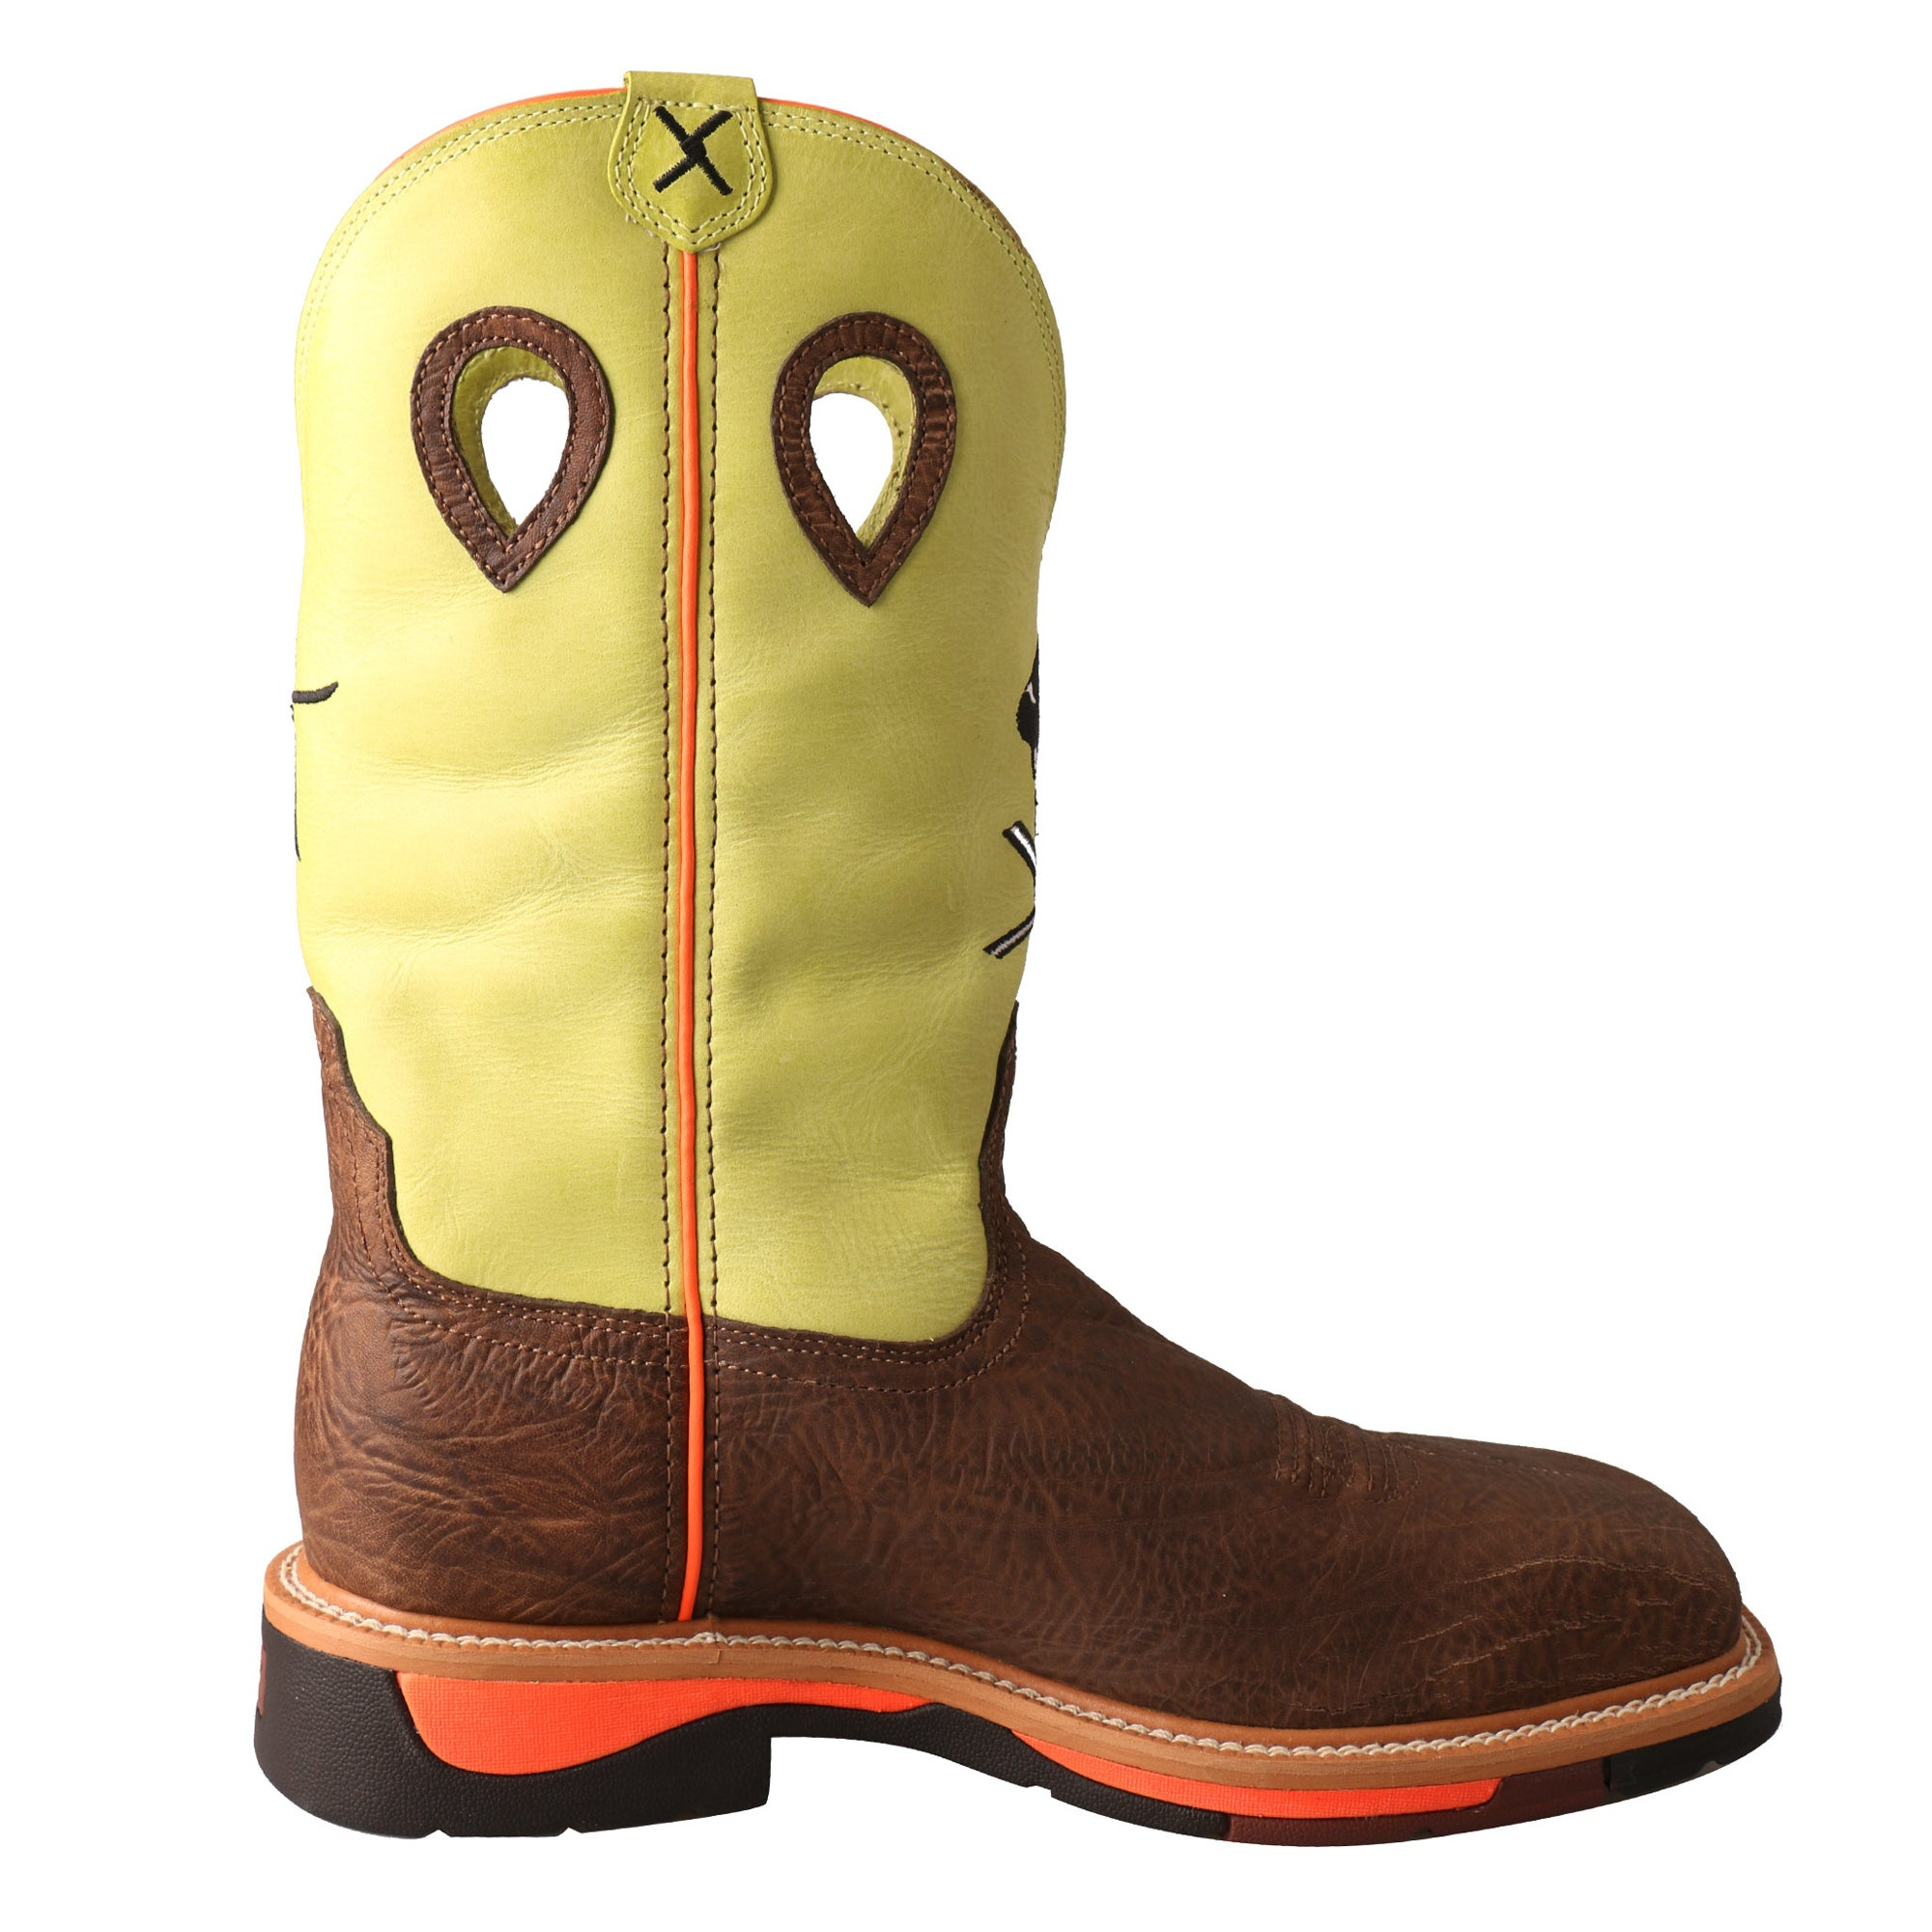 cb6bc80ce24 Twisted X Mens Yellow Leather Steel Toe Lite Weight Cowboy Work ...